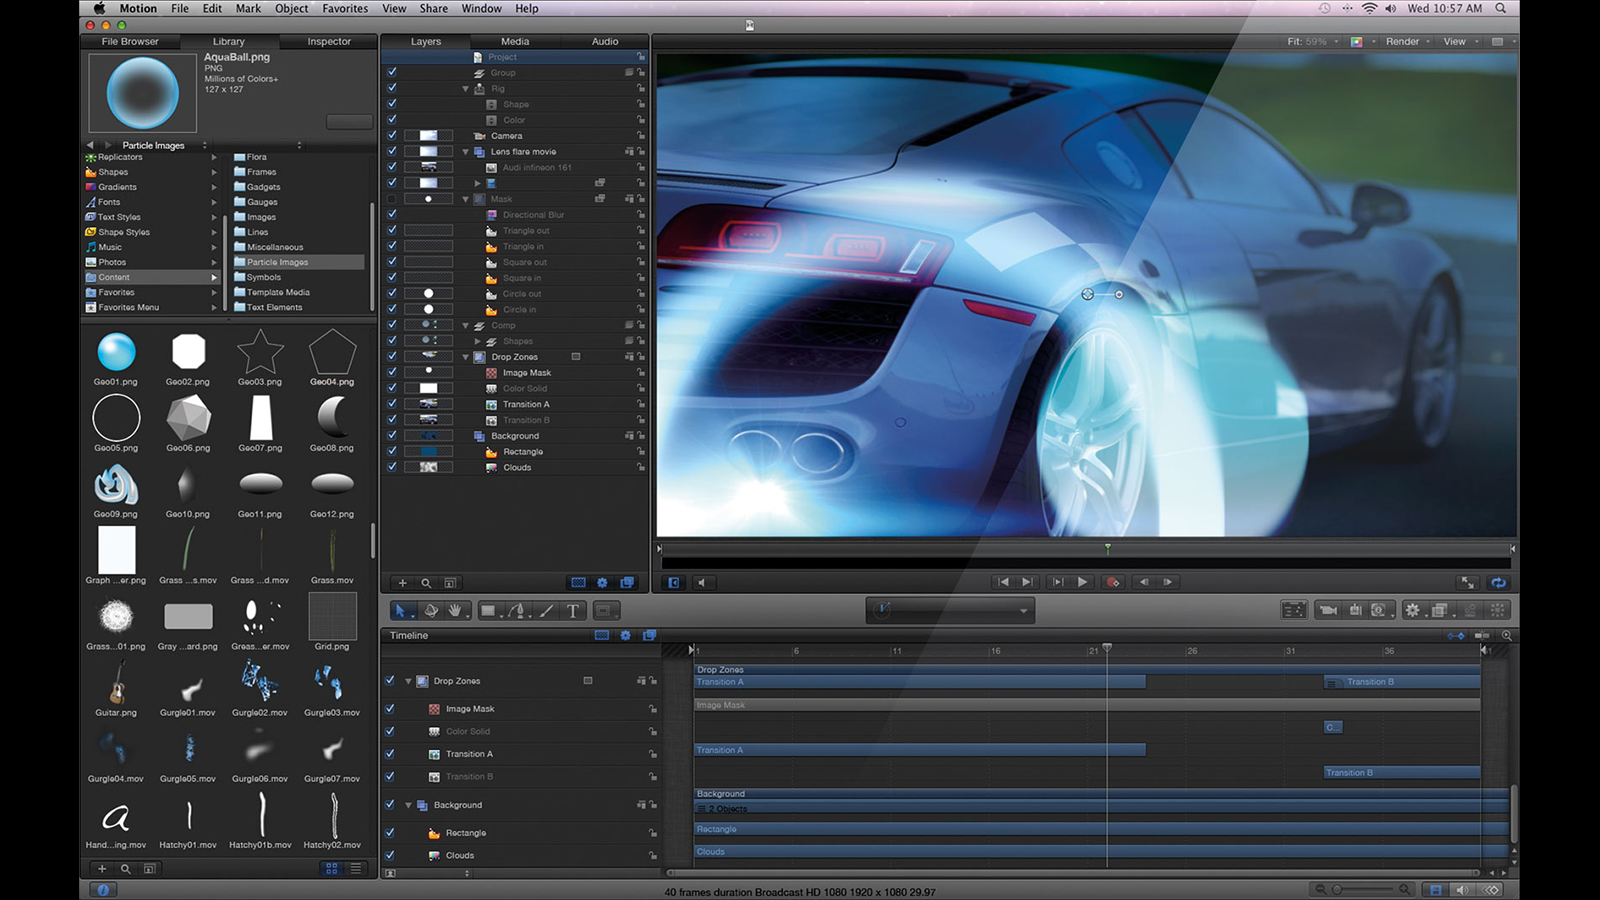 Apple releases update for final cut pro nab 2015 cinema5d for Apple motion templates for sale